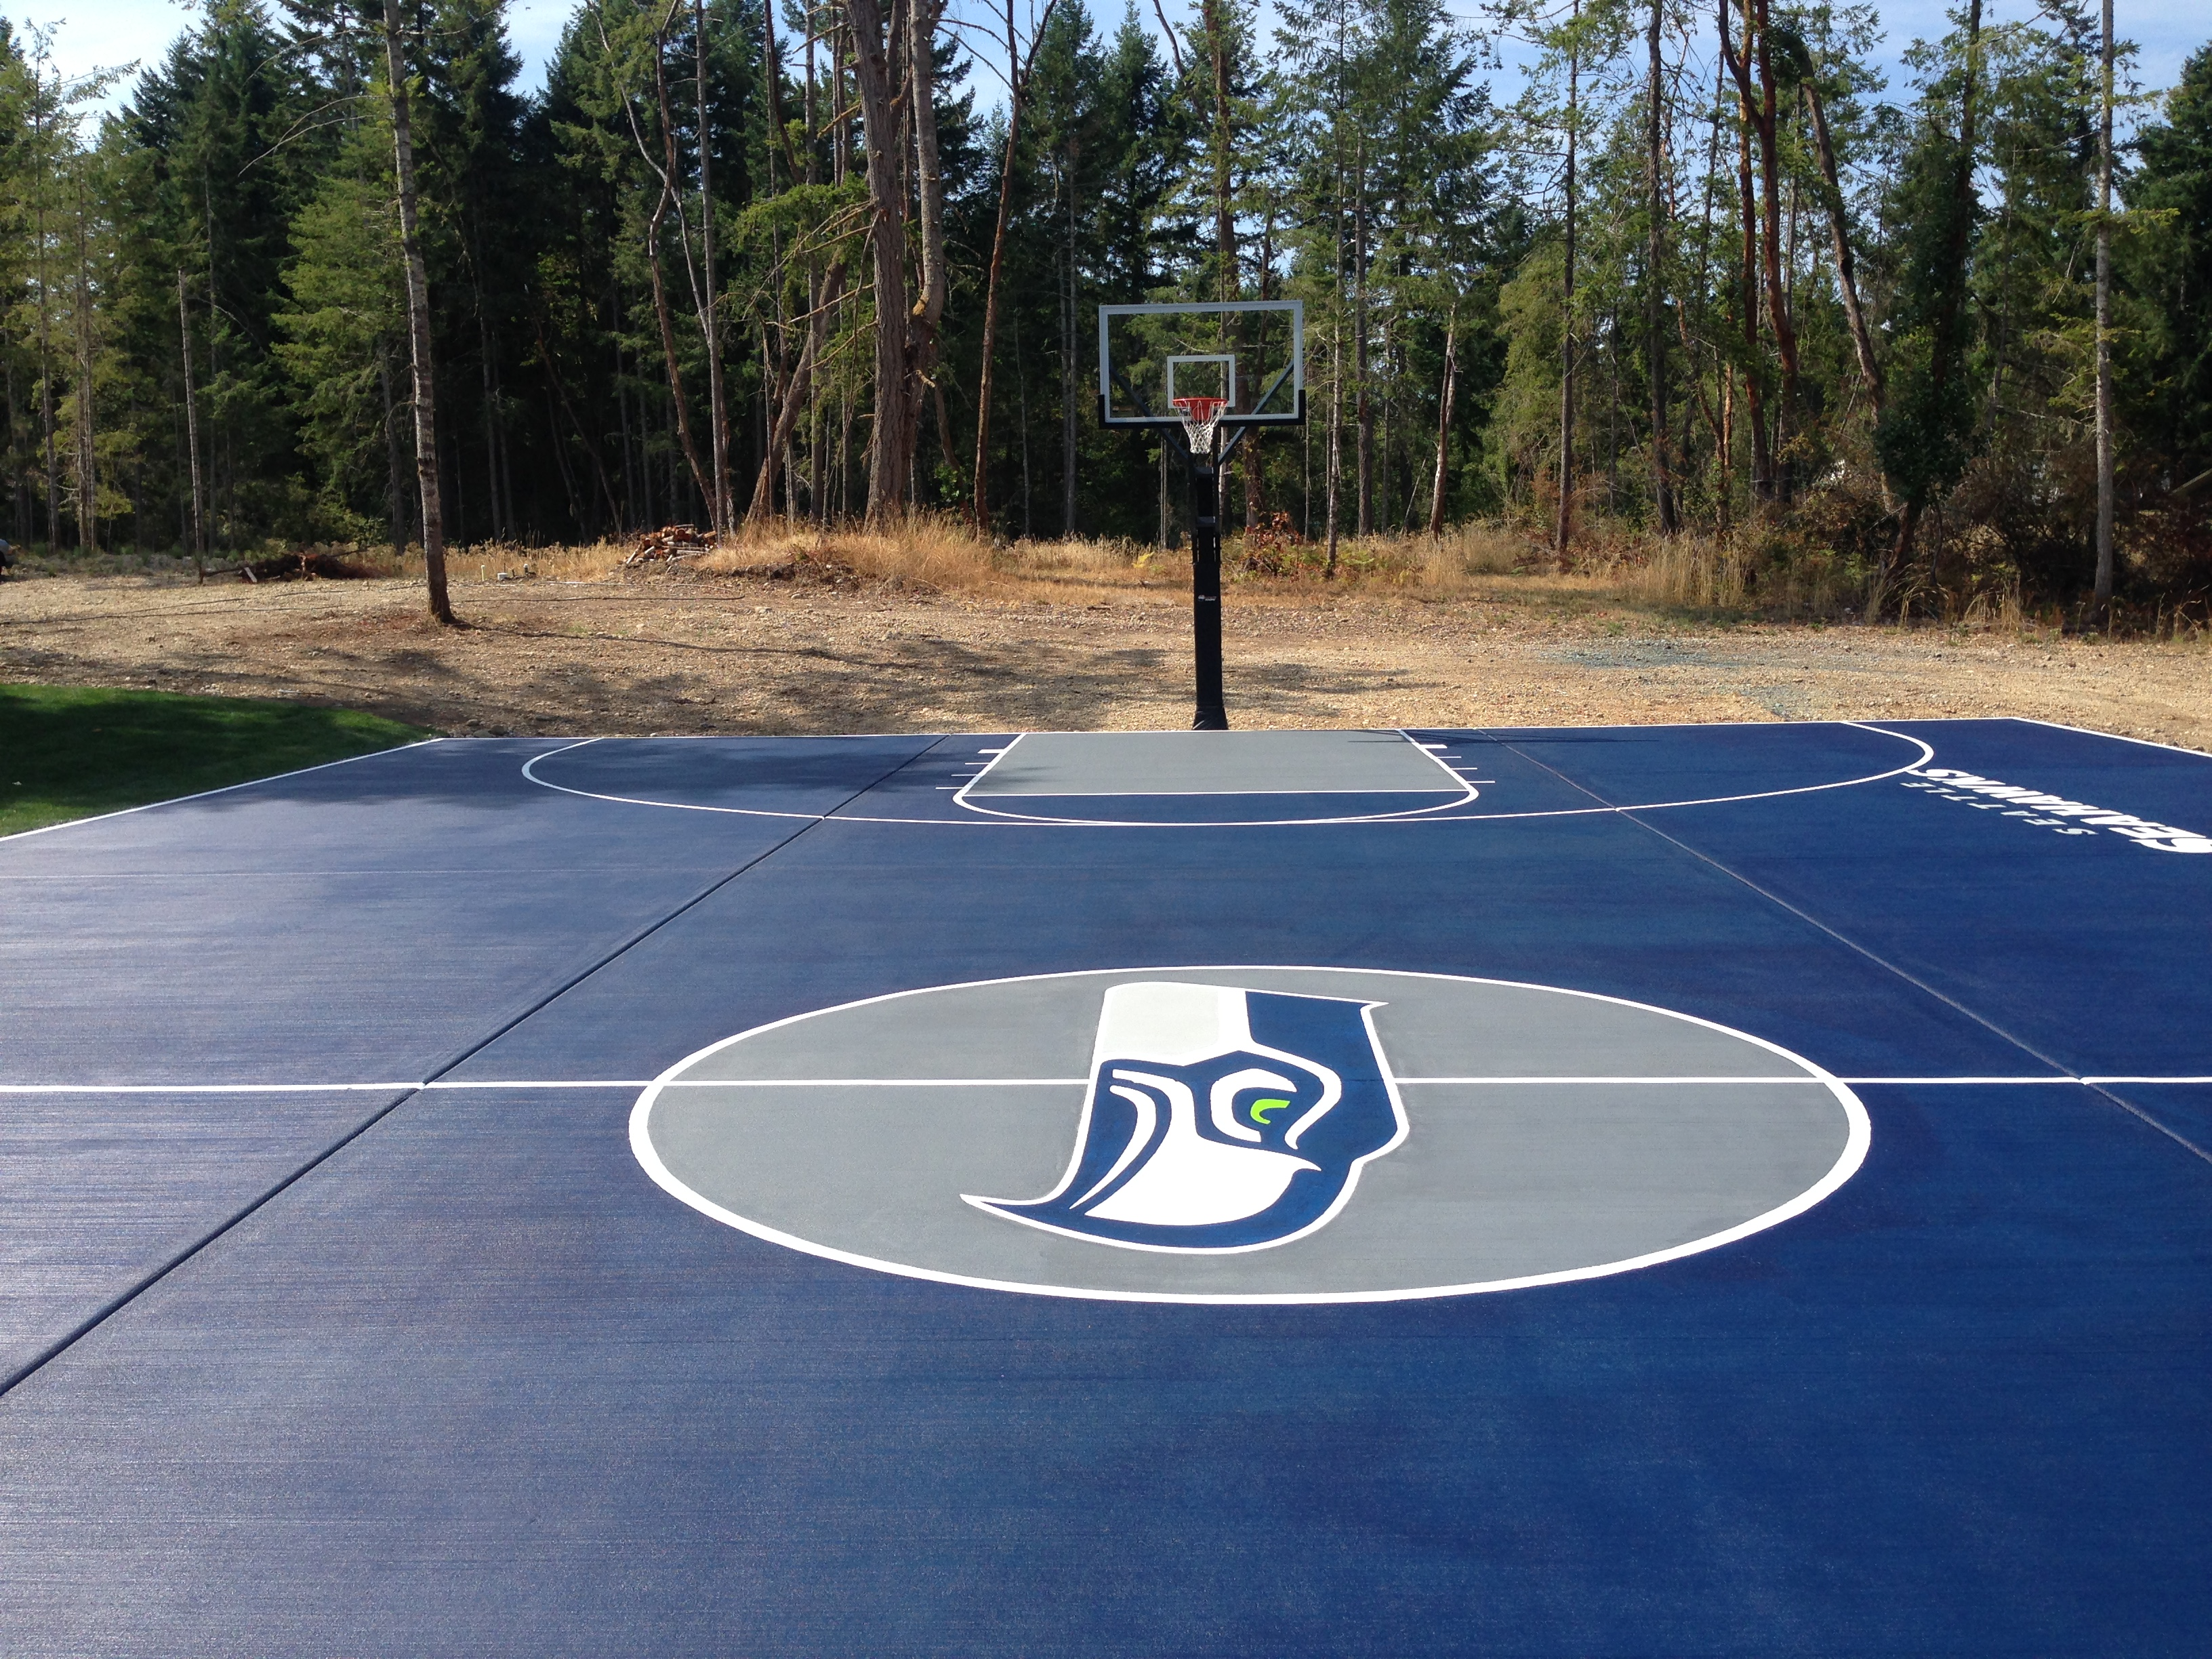 Seahawks fan stains personal basketball court newlook for Personal basketball court